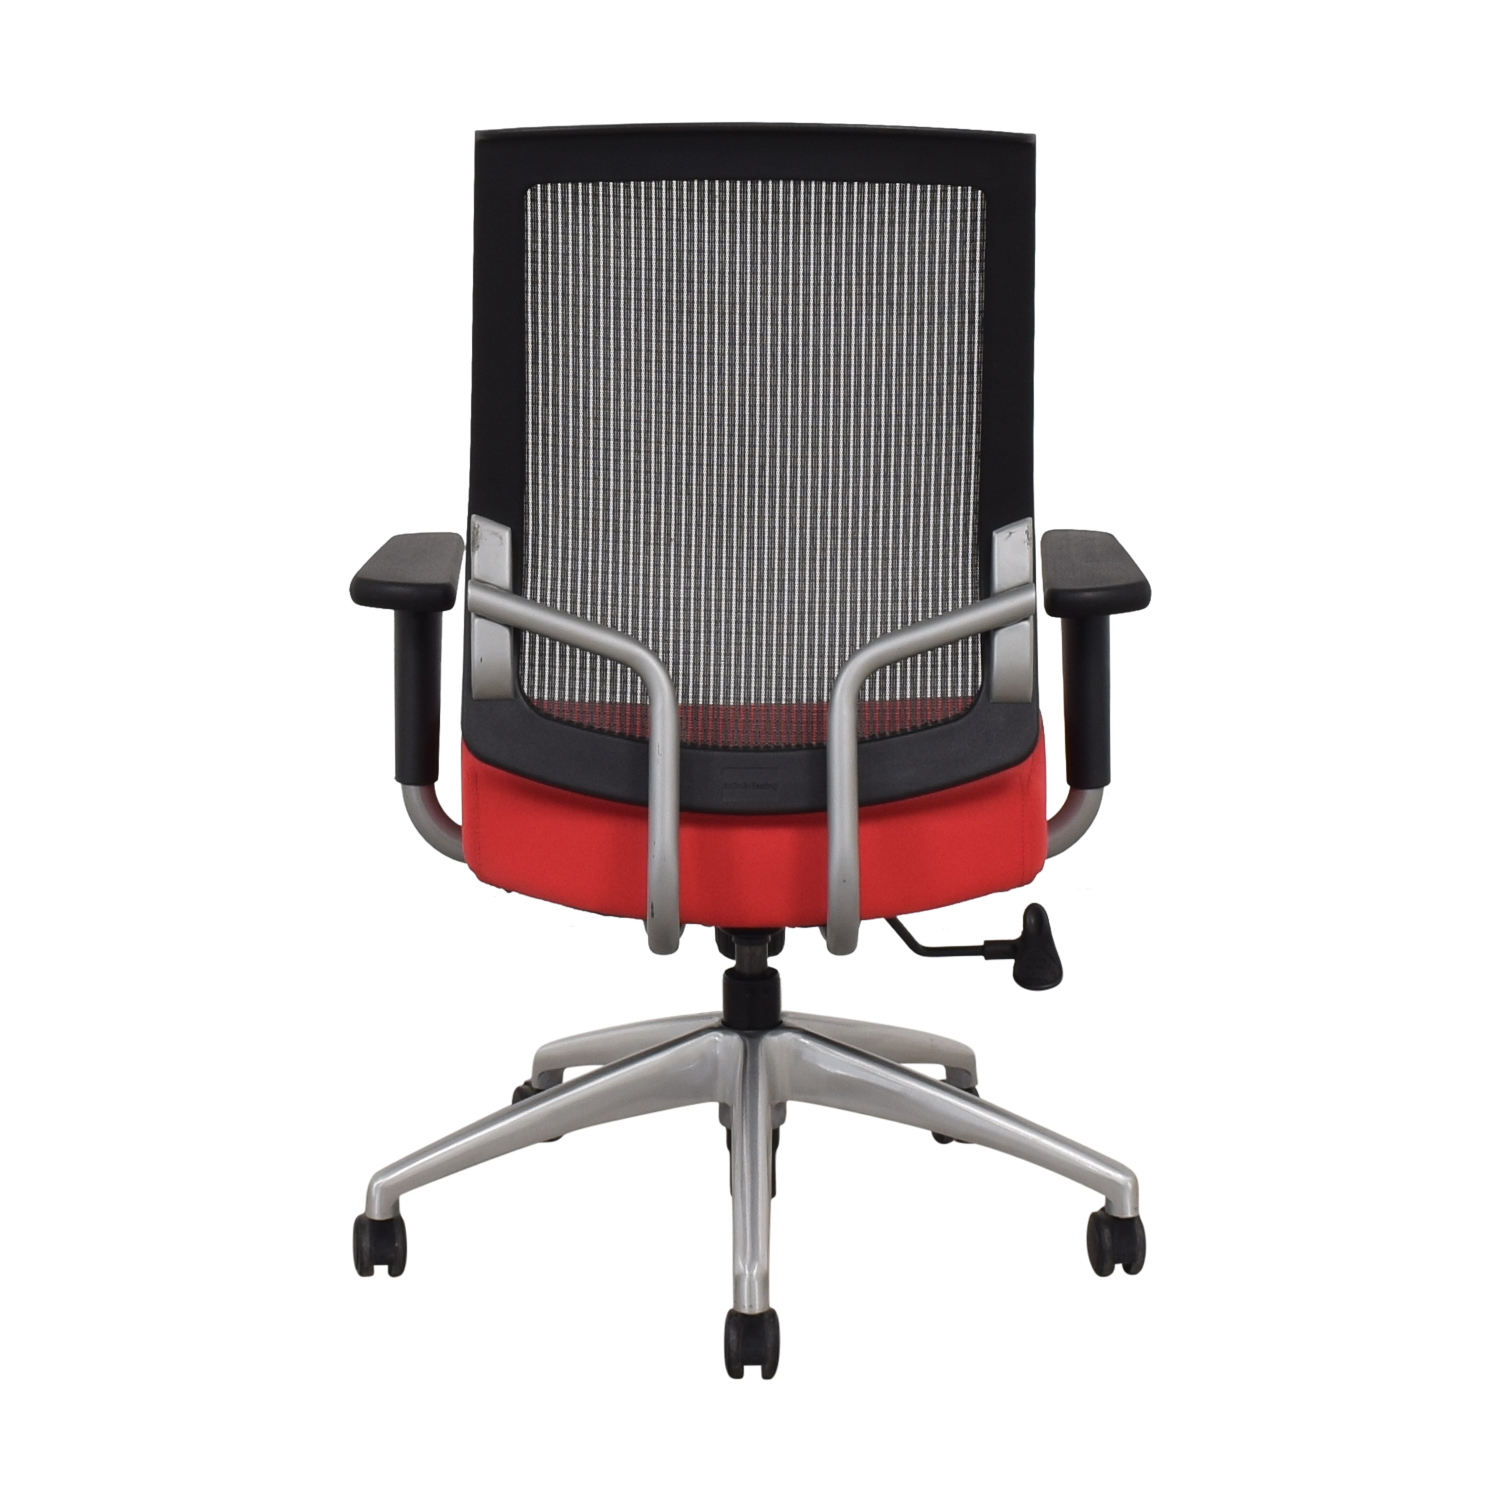 shop SitOnIt SitOnIt Focus High Back Office Chair online